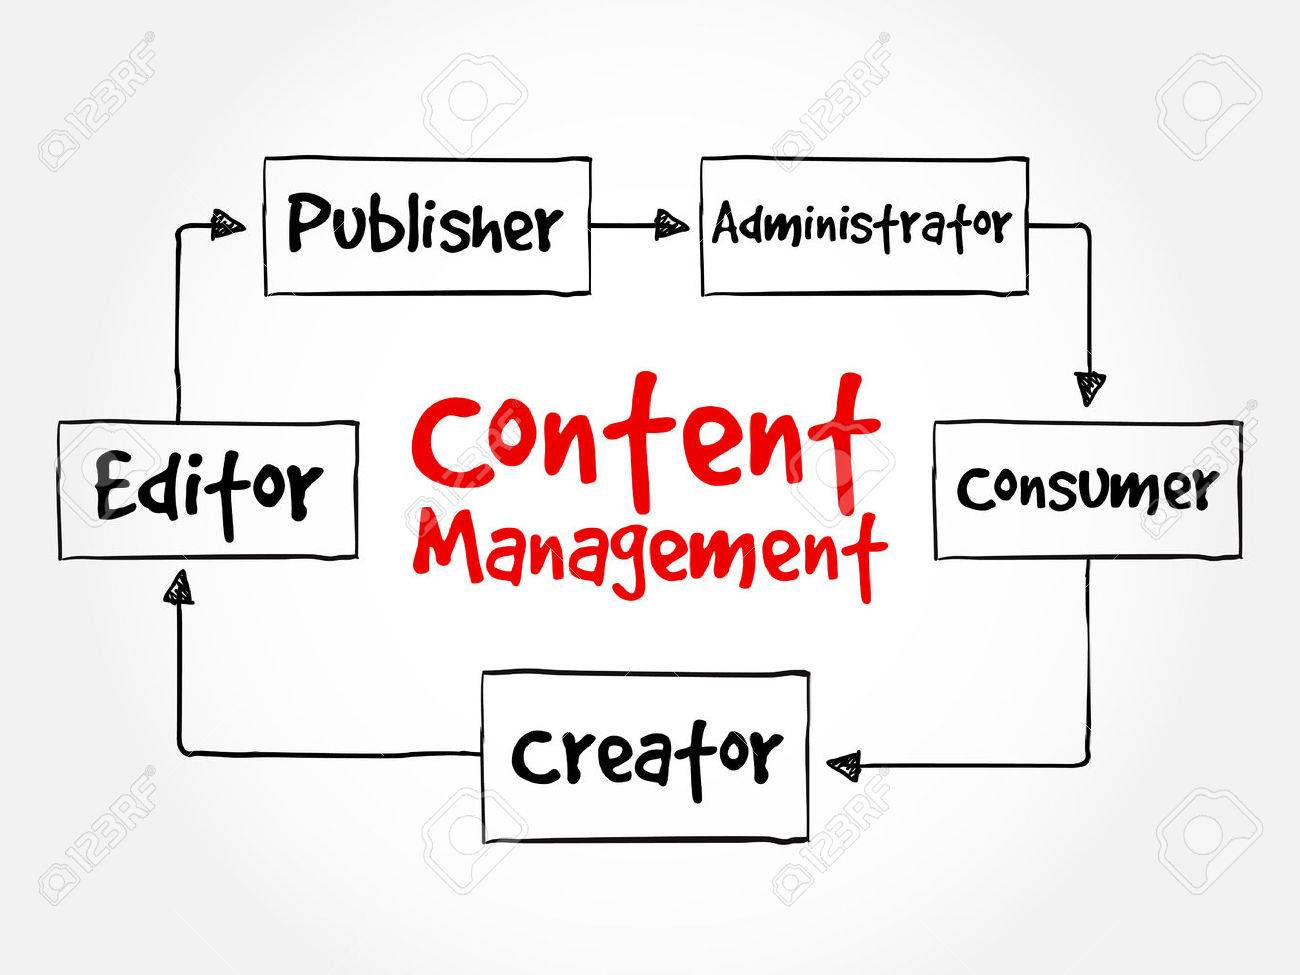 Content management contributor relationships mind map flowchart content management contributor relationships mind map flowchart business concept for presentations and reports stock vector nvjuhfo Images